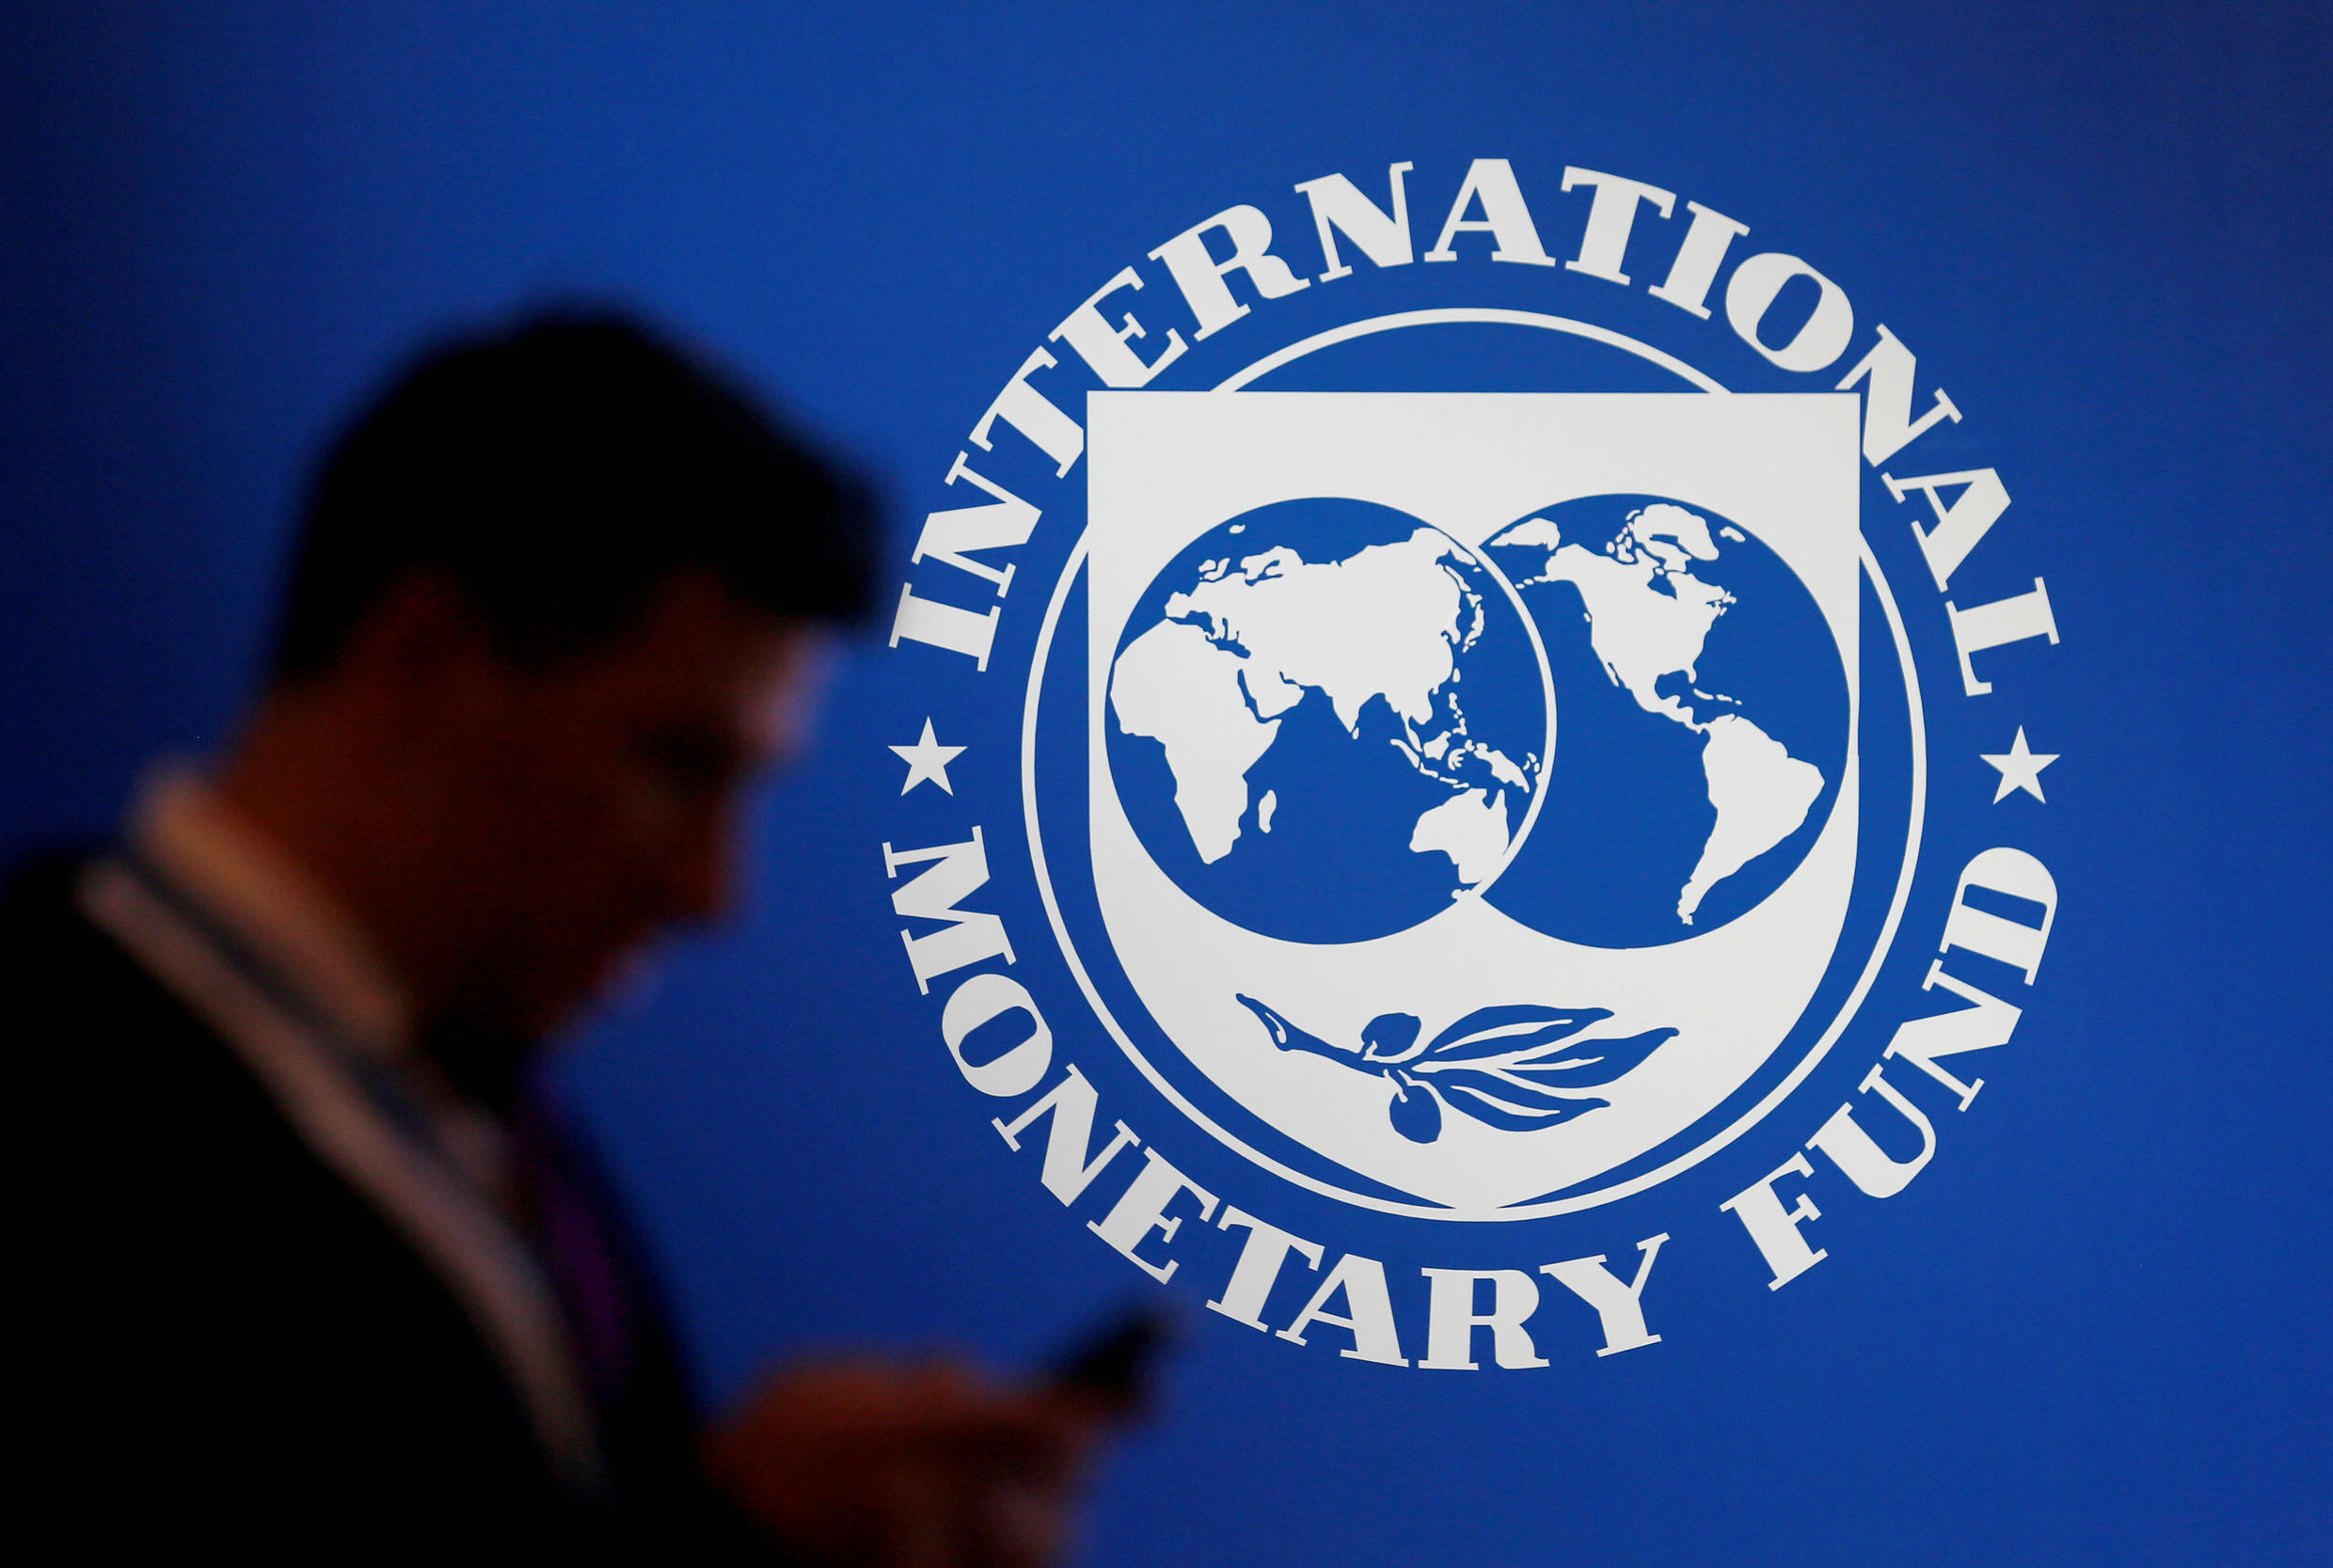 2021-04-12T165912Z_1292747010_RC2GUM99IW2L_RTRMADP_3_IMF-WORLDBANK-RESOURCES